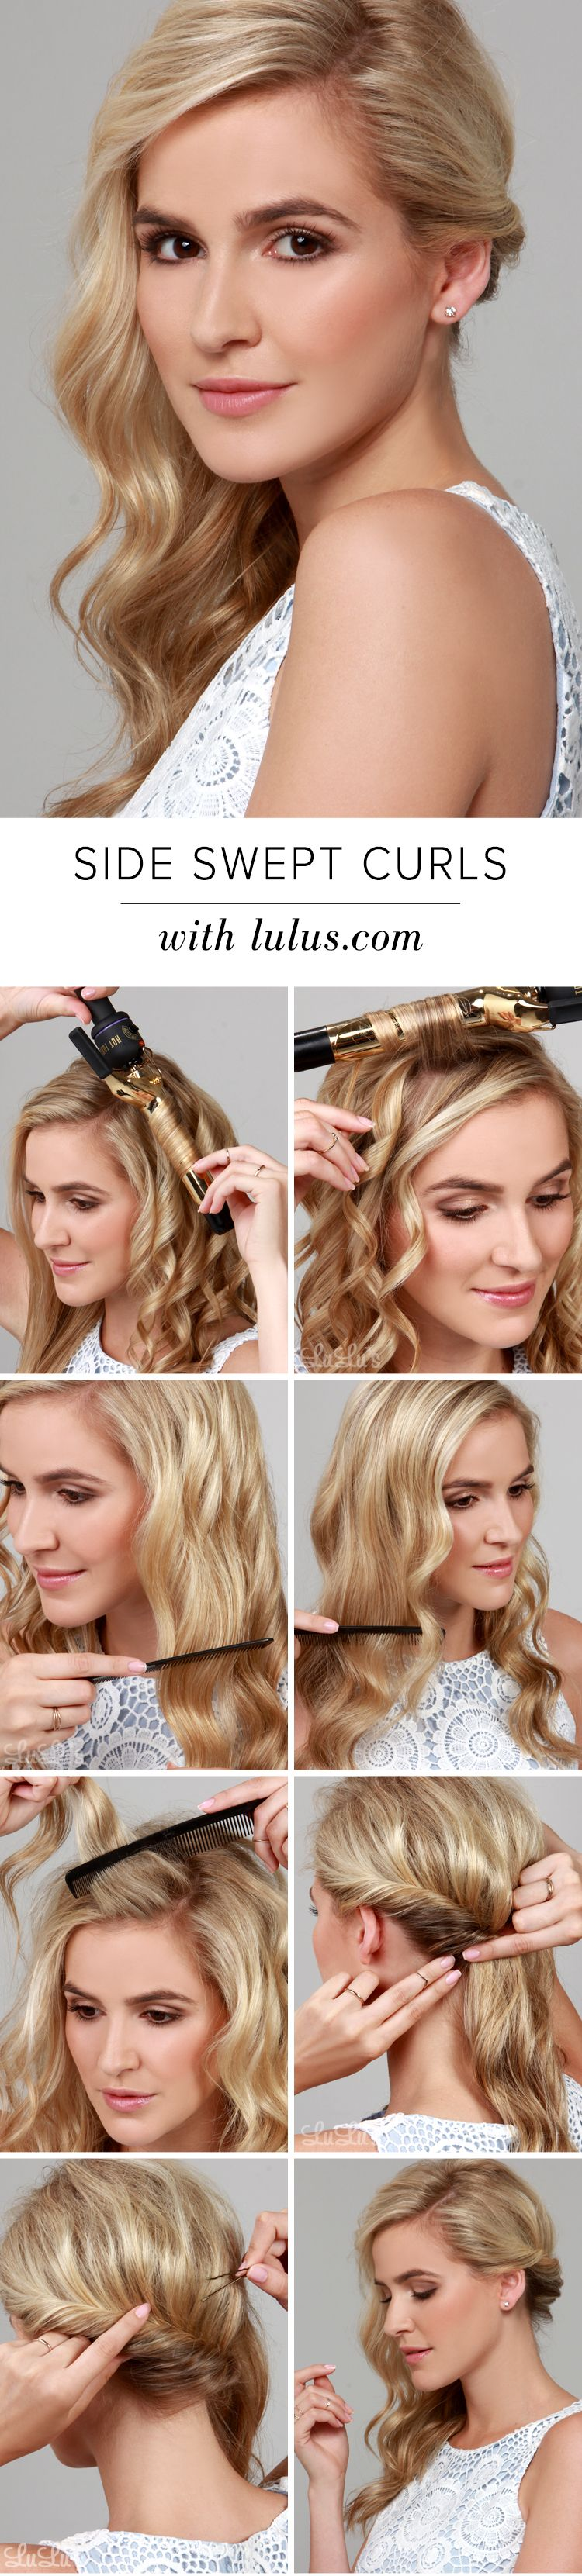 lulus how-to: side swept curls hair tutorial | my style